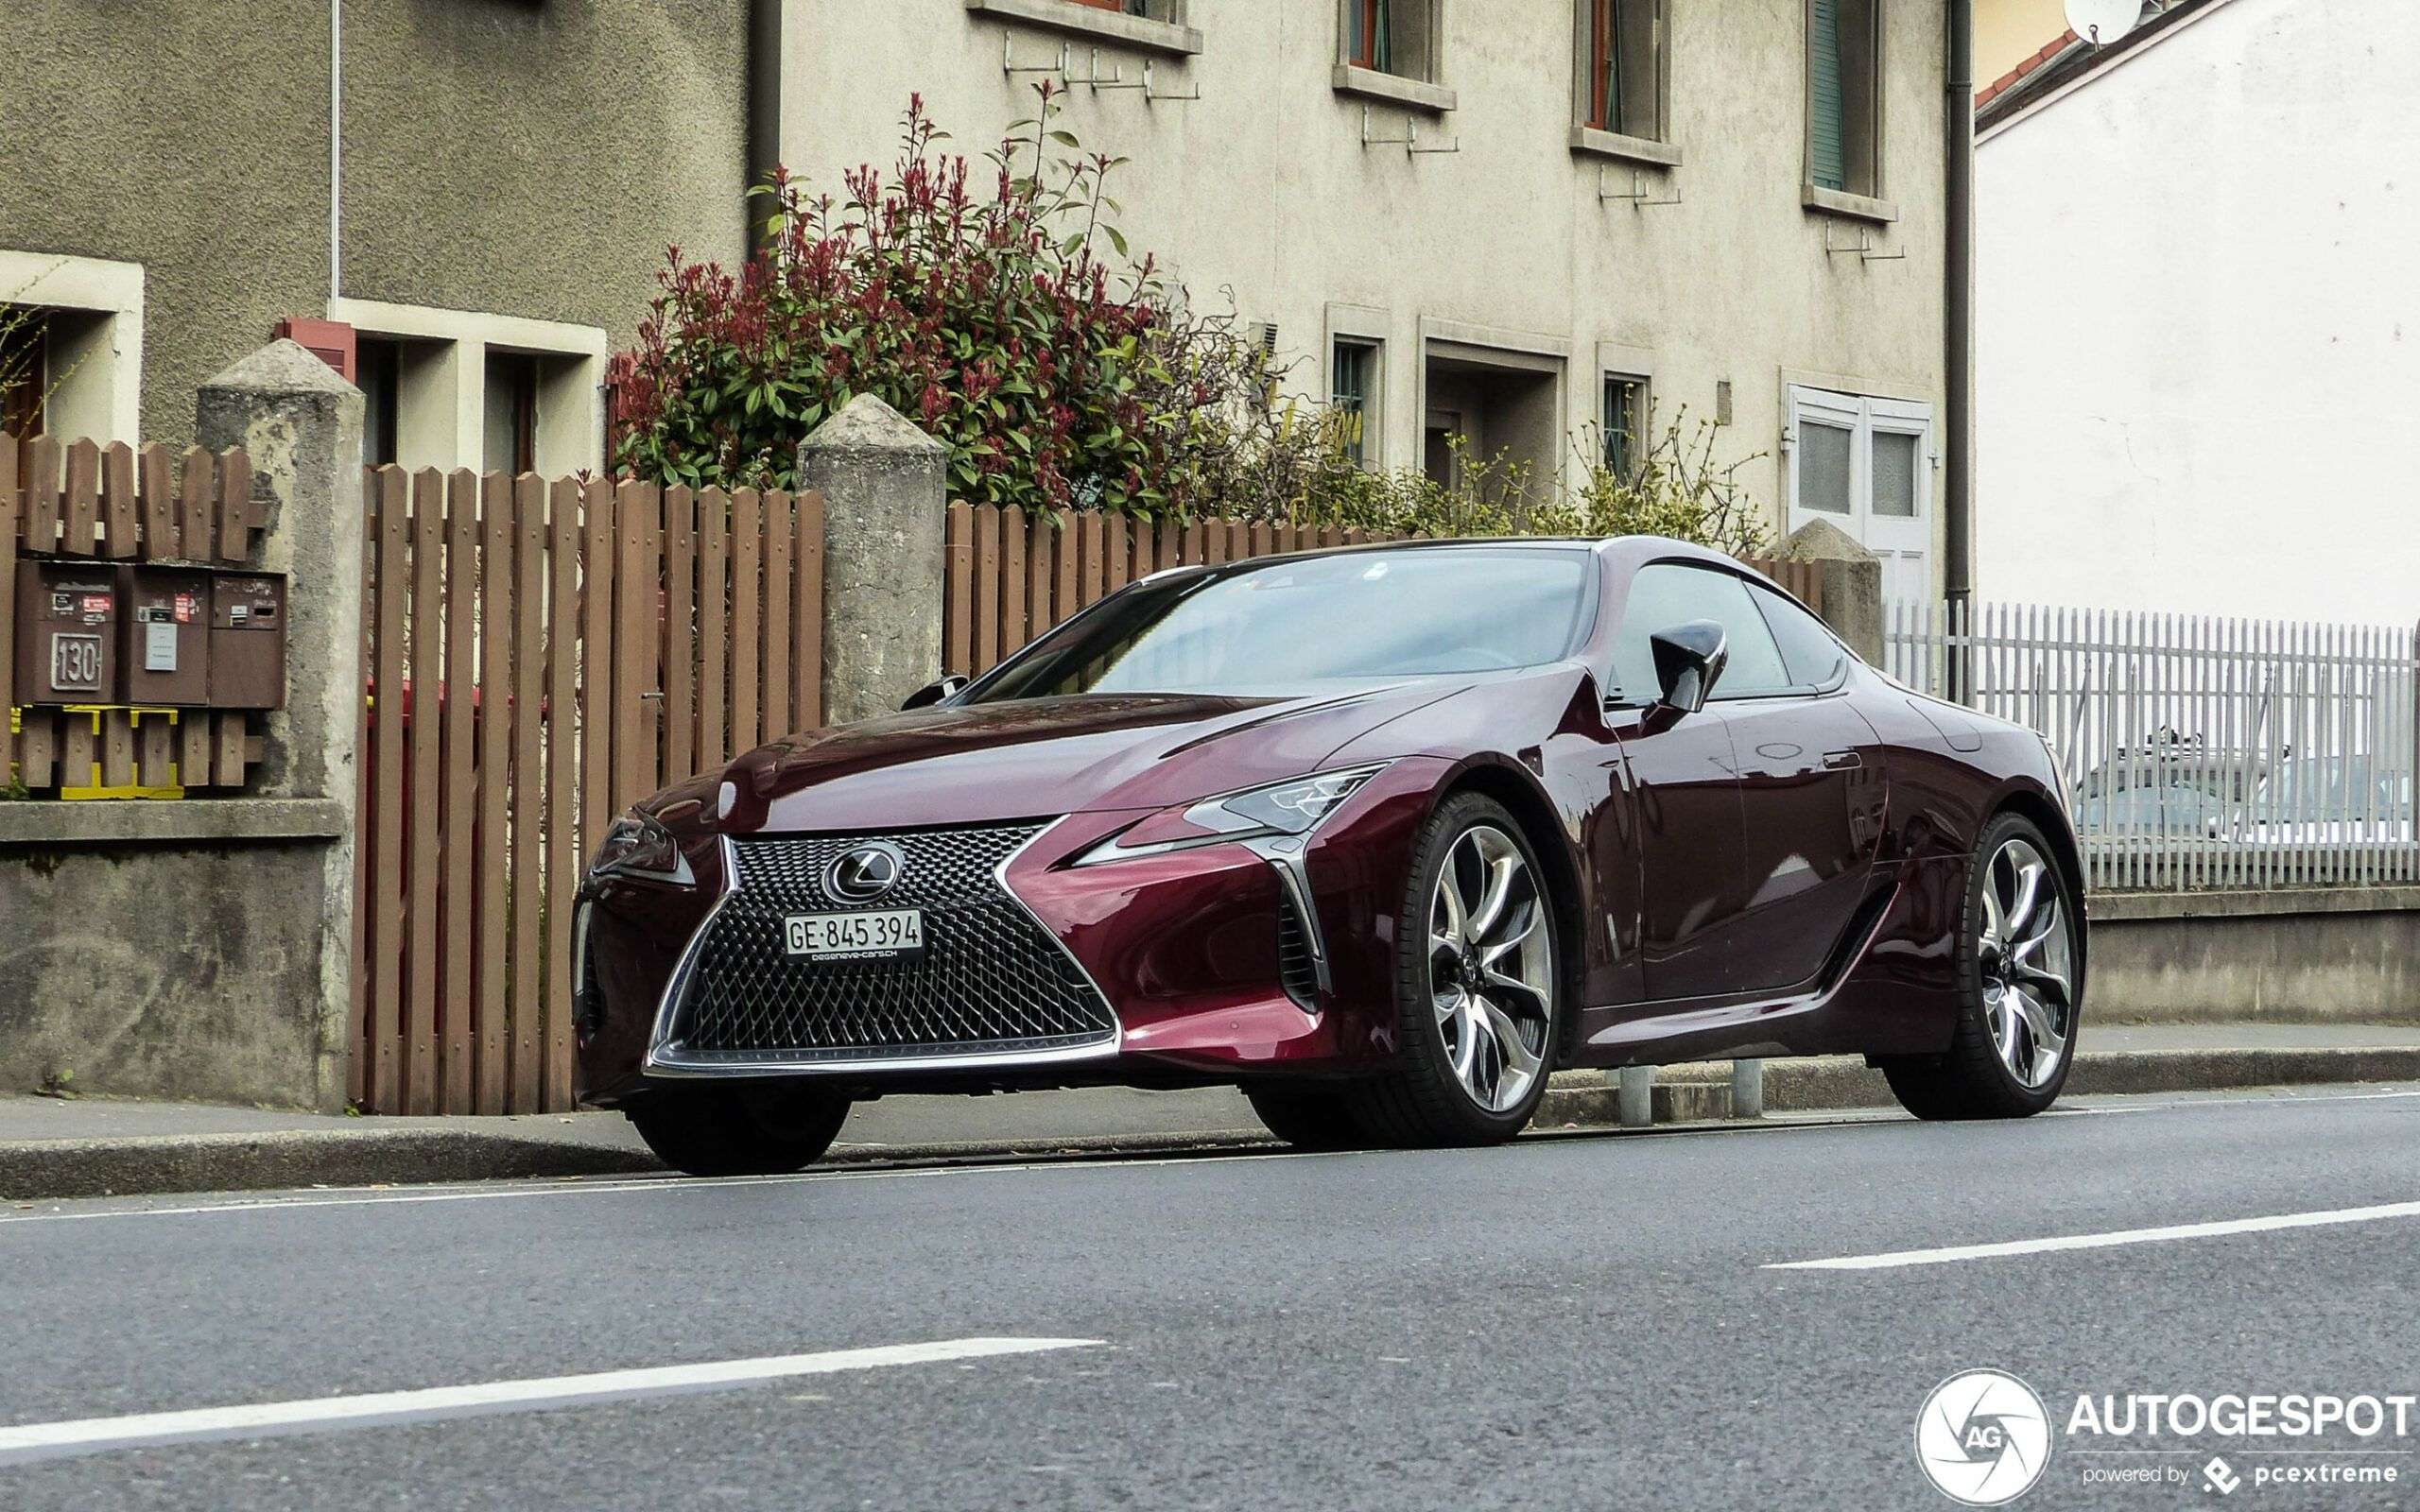 Lexus Coupe 2020 Price, Design And Review The electric